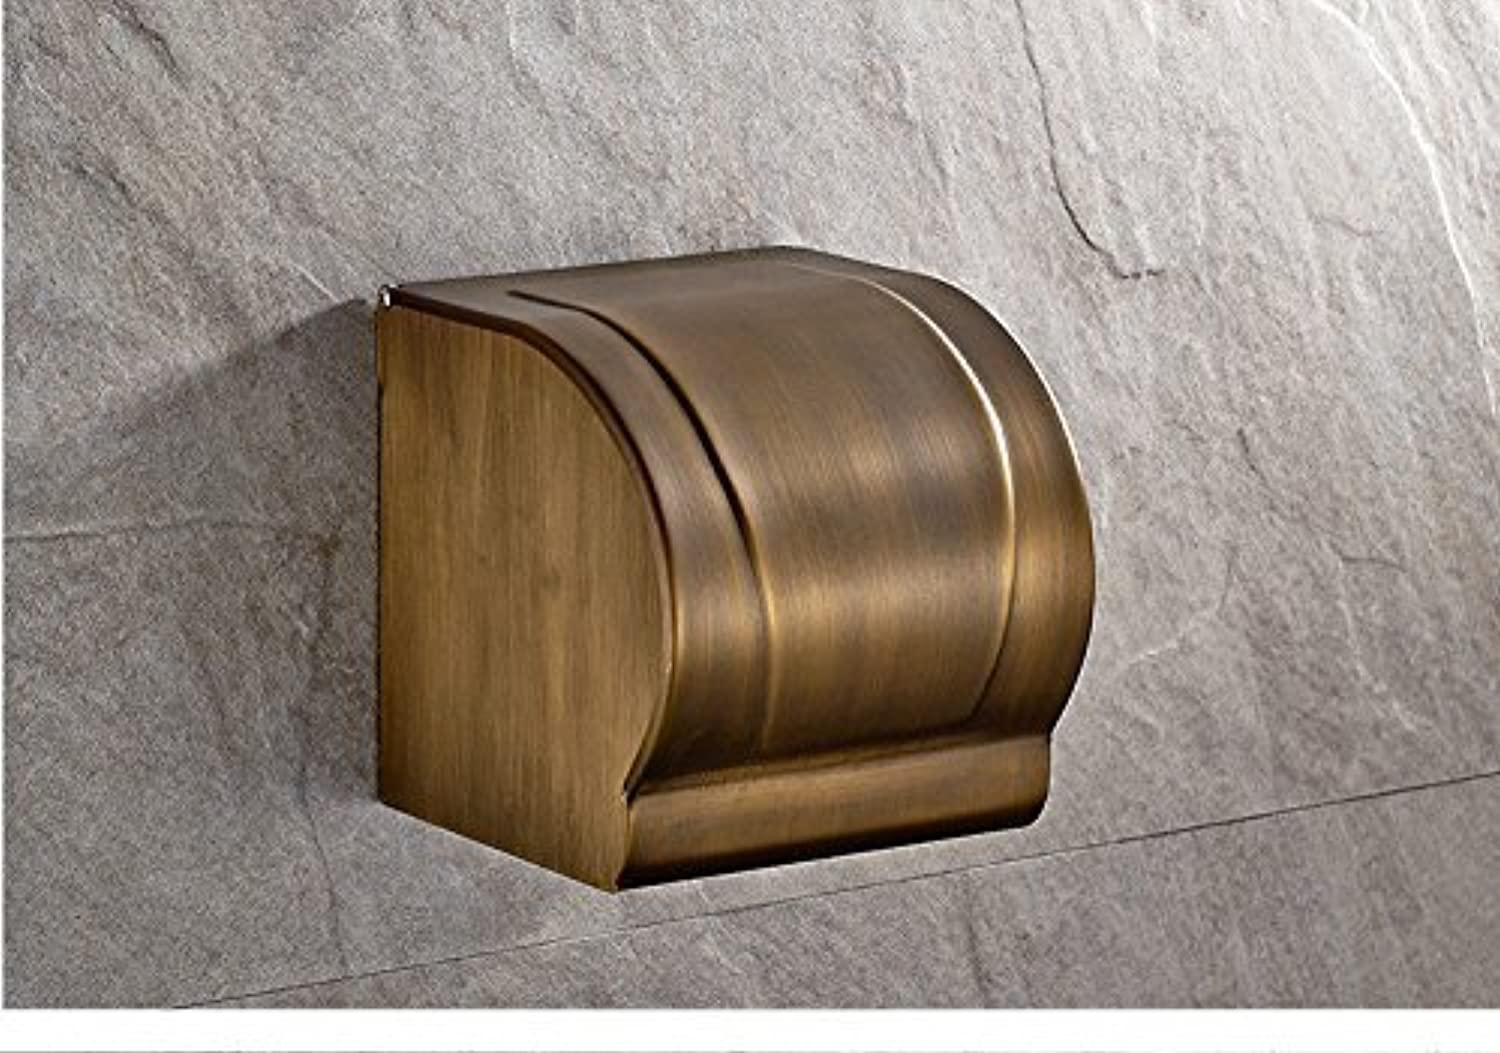 All Accessories for Bathroom Old Copper Waterproof Paper Paper Holder Paper Box Box of Toilet Paper Toilet Toilet Paper Framework